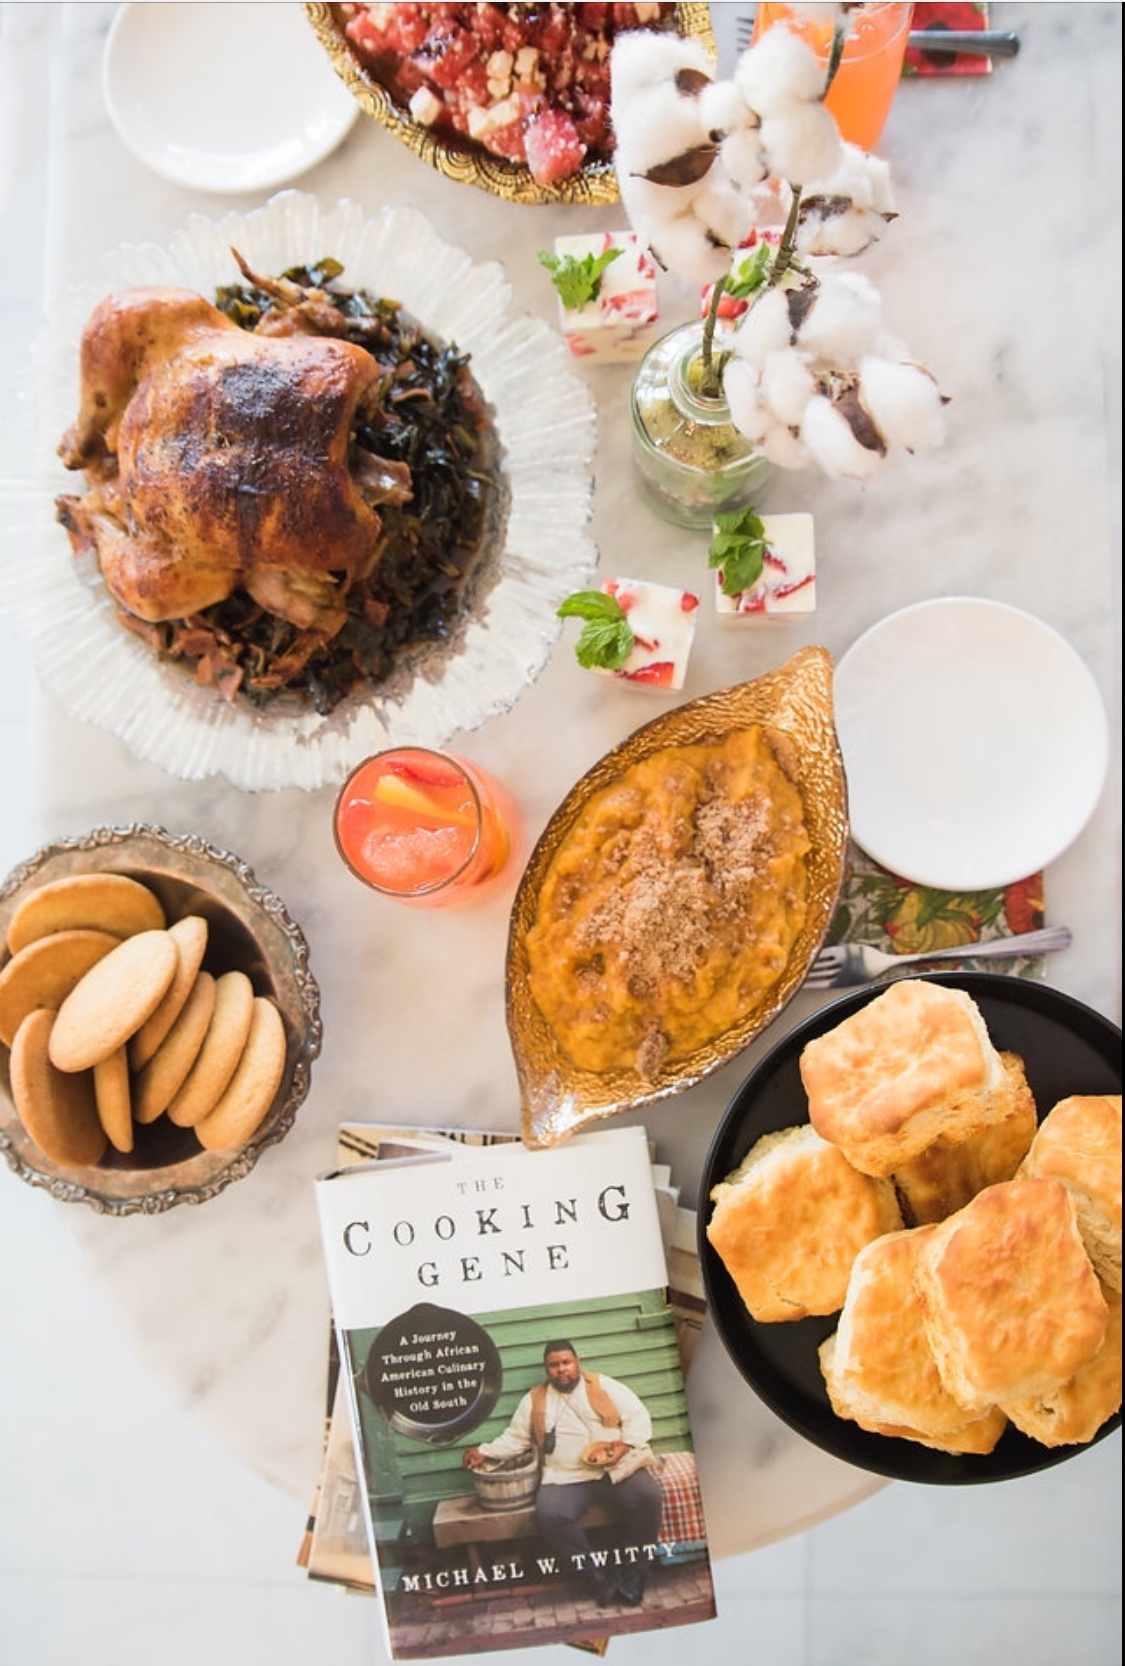 juneteenth recipes on table with book